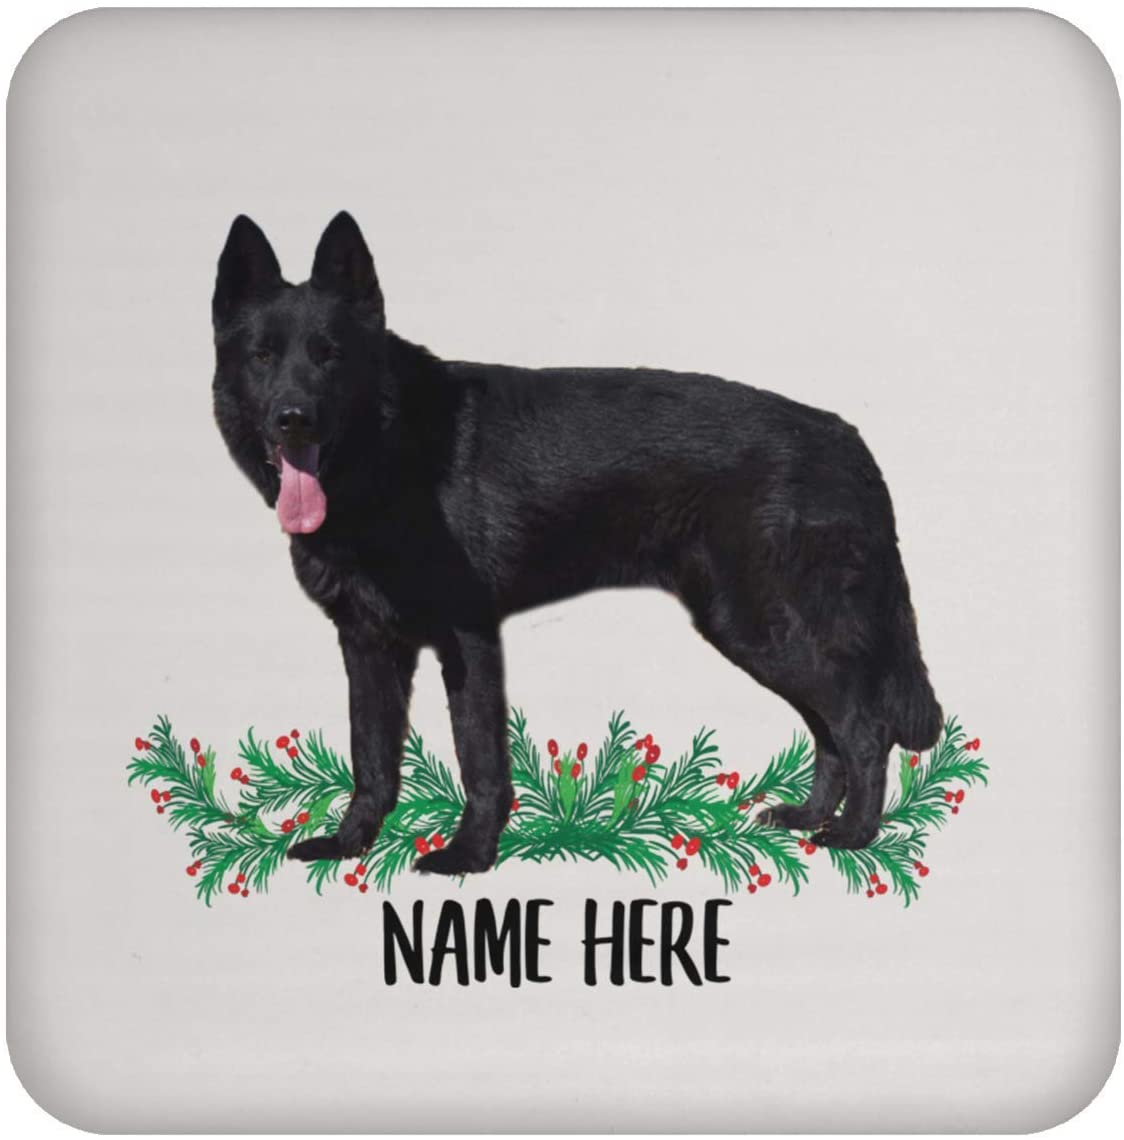 Funny German Shepherd Black Personalized Name Gift for Mom Coasters for Drinks